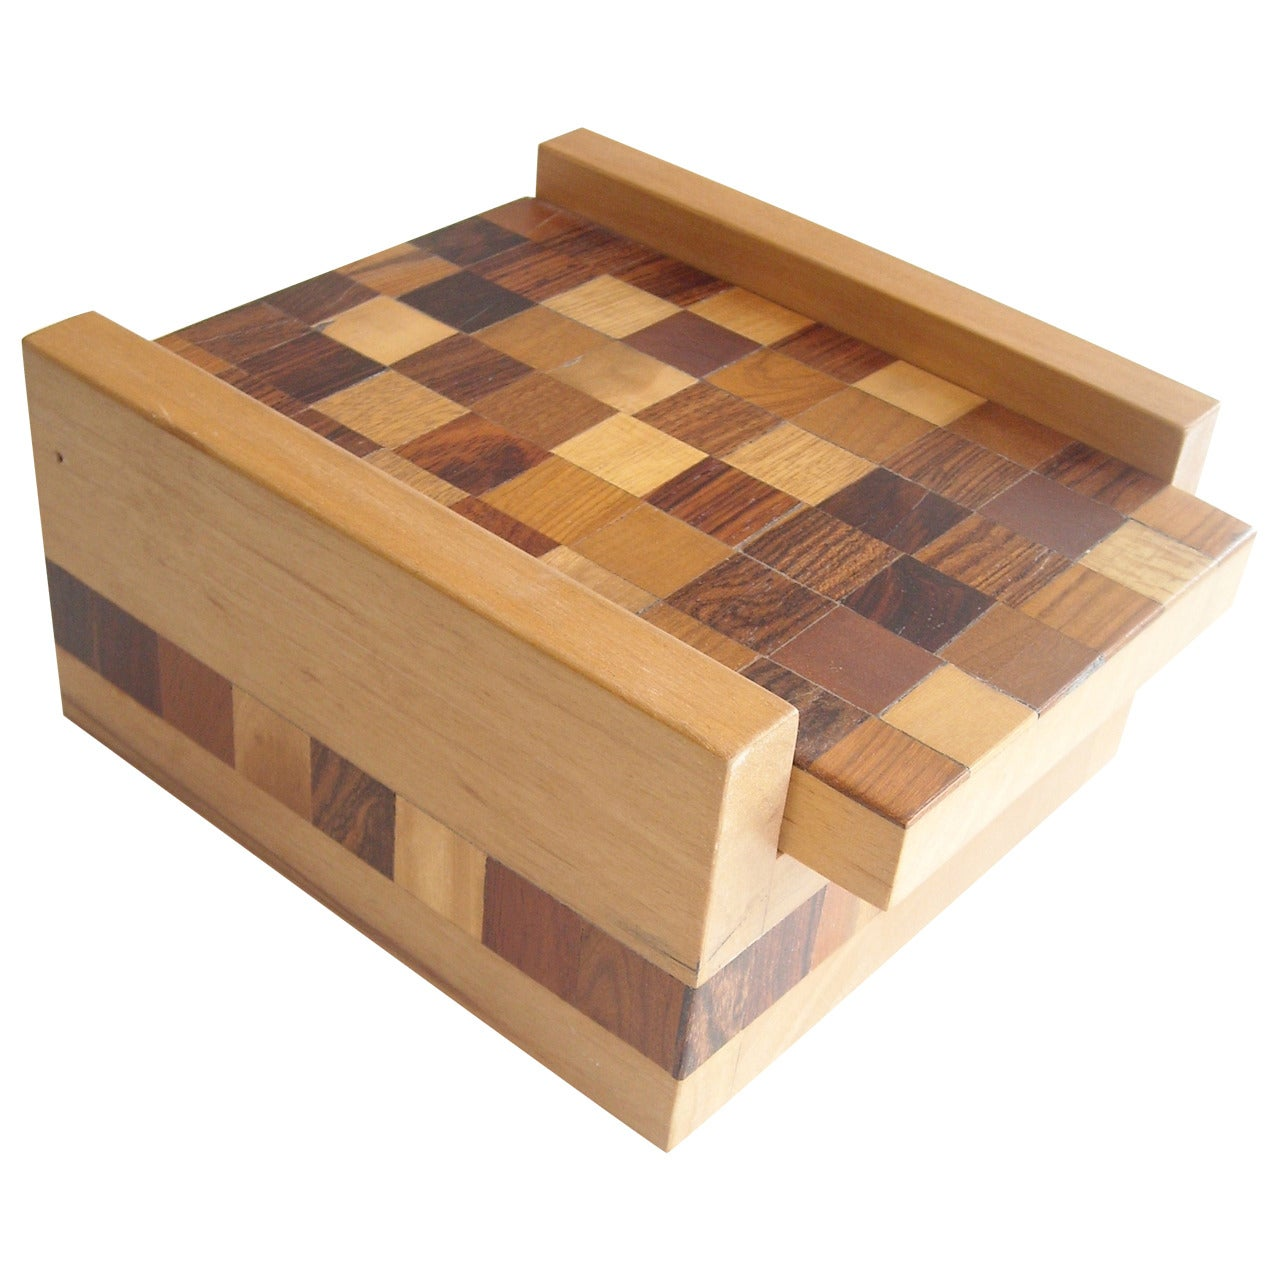 Don Shoemaker Parquetry Work Box for Senal SA, Mexico, Label